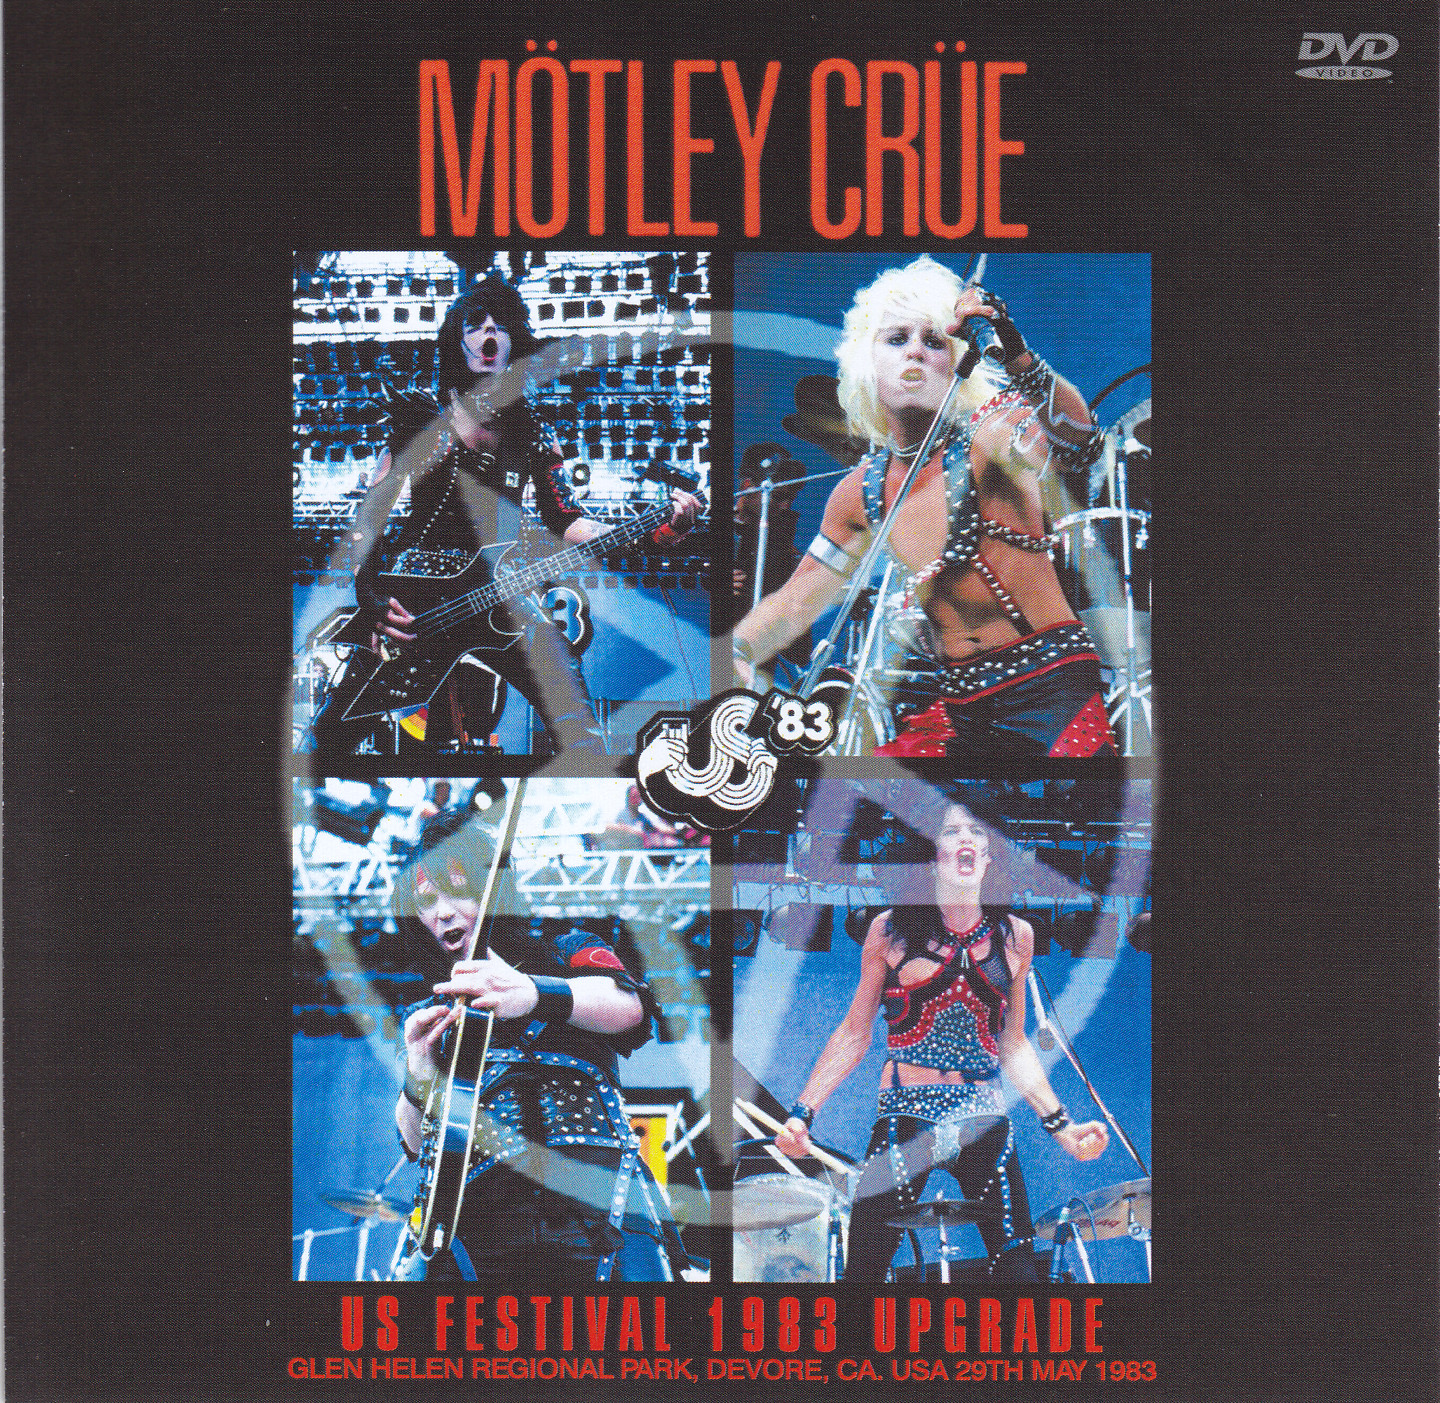 Motley Crue – US Festival 1983 Upgrade (1Single DVDR) | DiscJapan